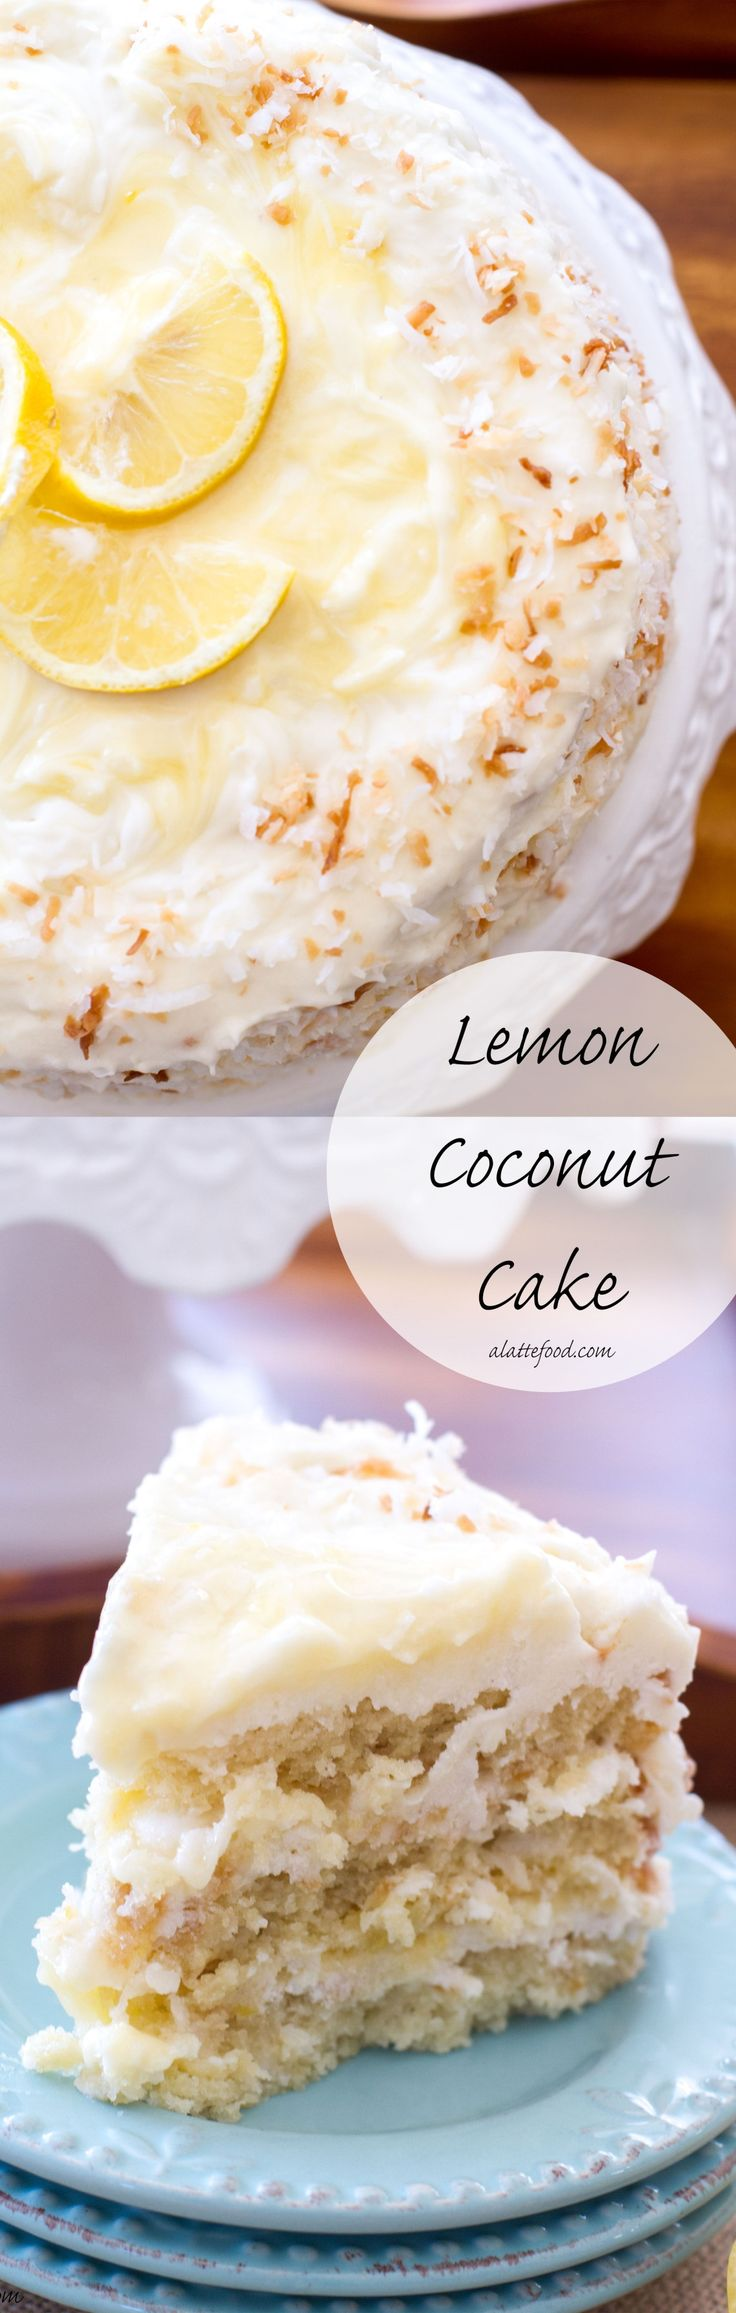 This classic coconut cake is filled lemon curd and topped with a lemon cream cheese frosting! | www.alattefood.com Good Cake for you  #brownie  #food